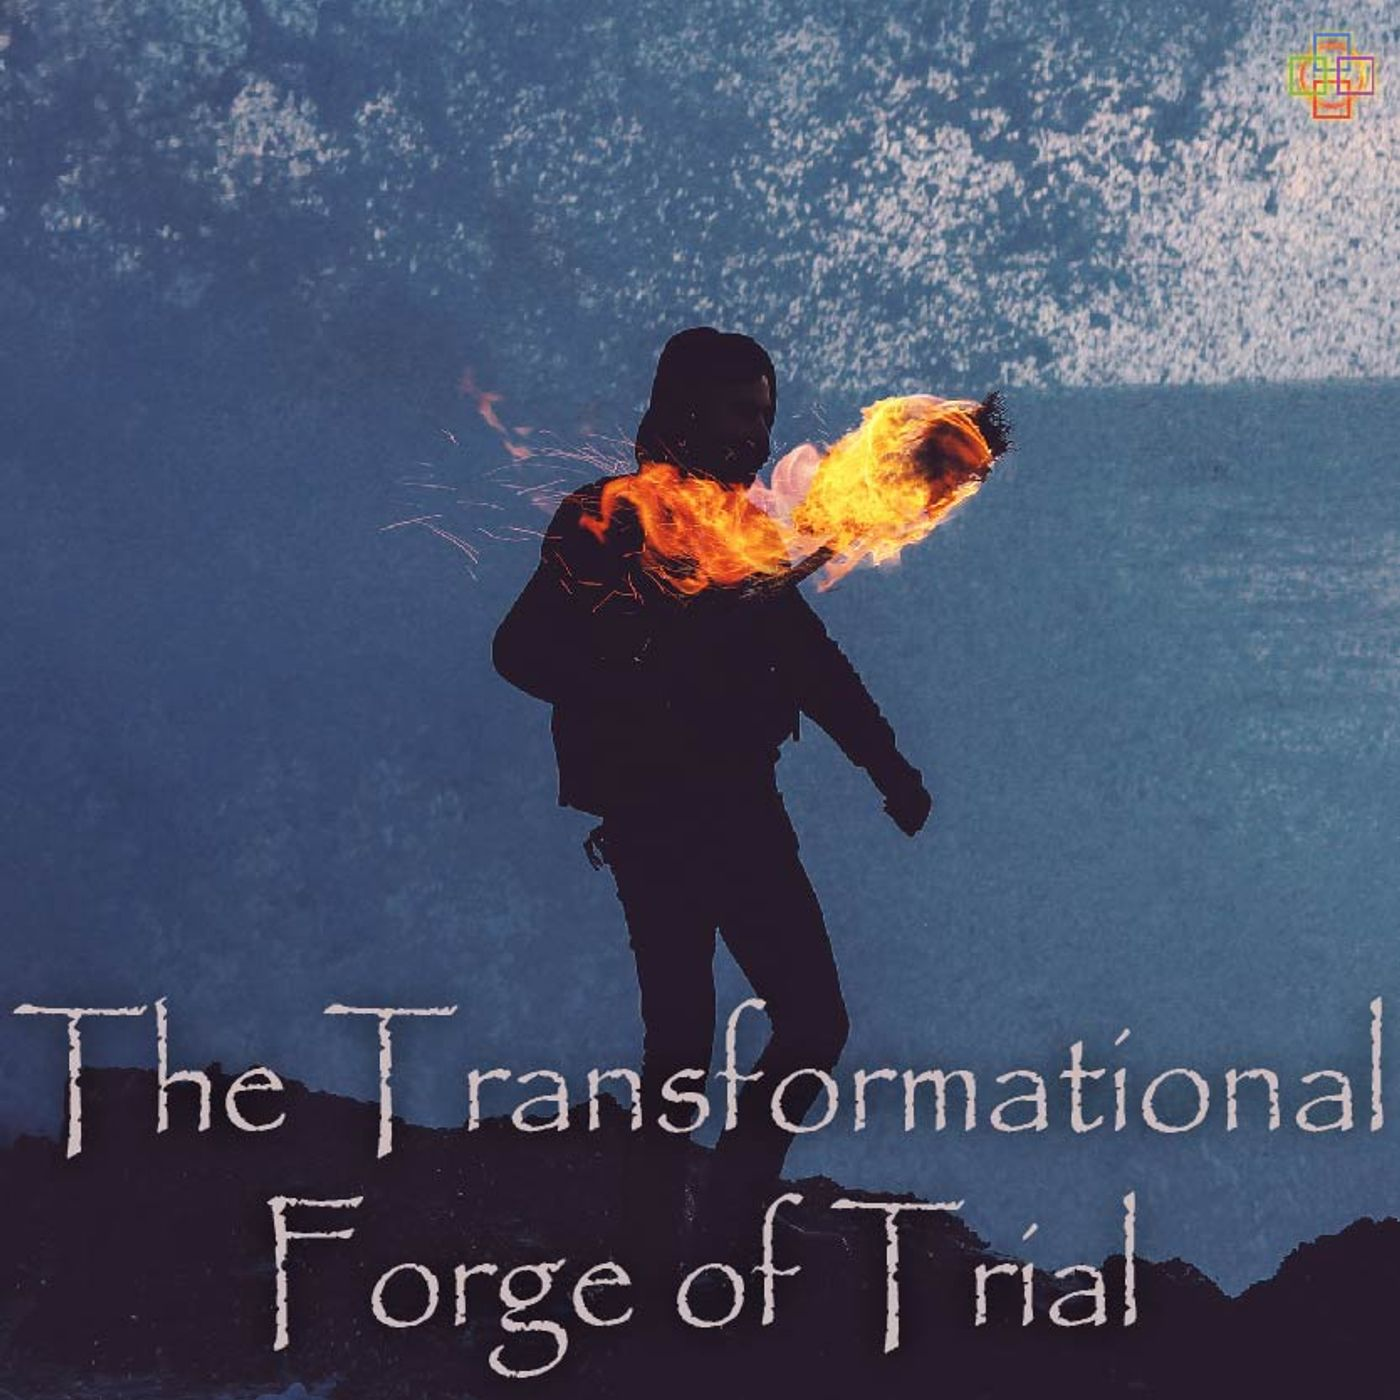 The Transformational Forge of Trial